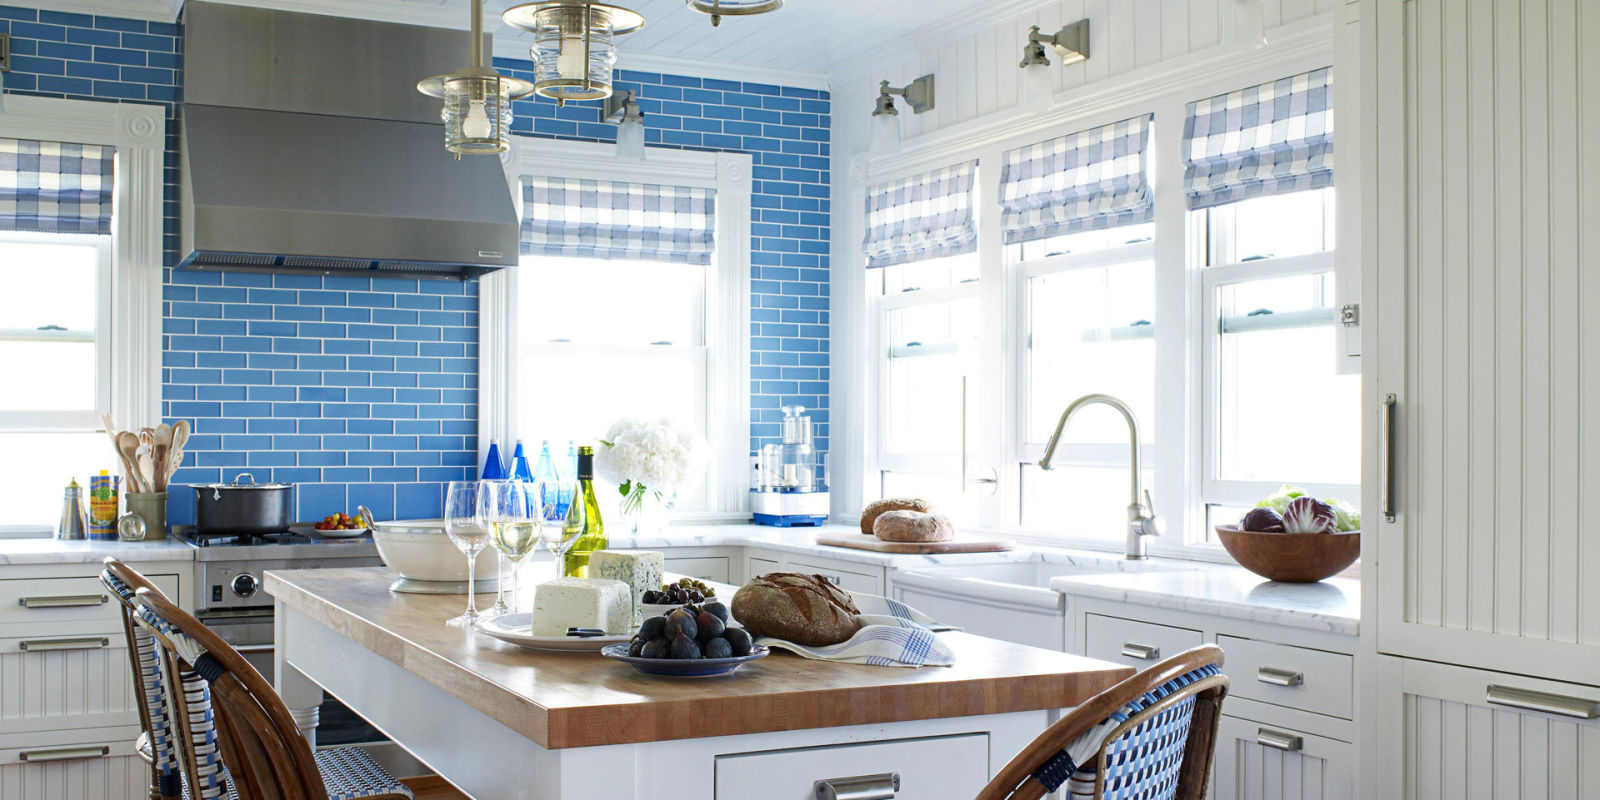 The Best Kitchens 50 best kitchen backsplash ideas - tile designs for kitchen